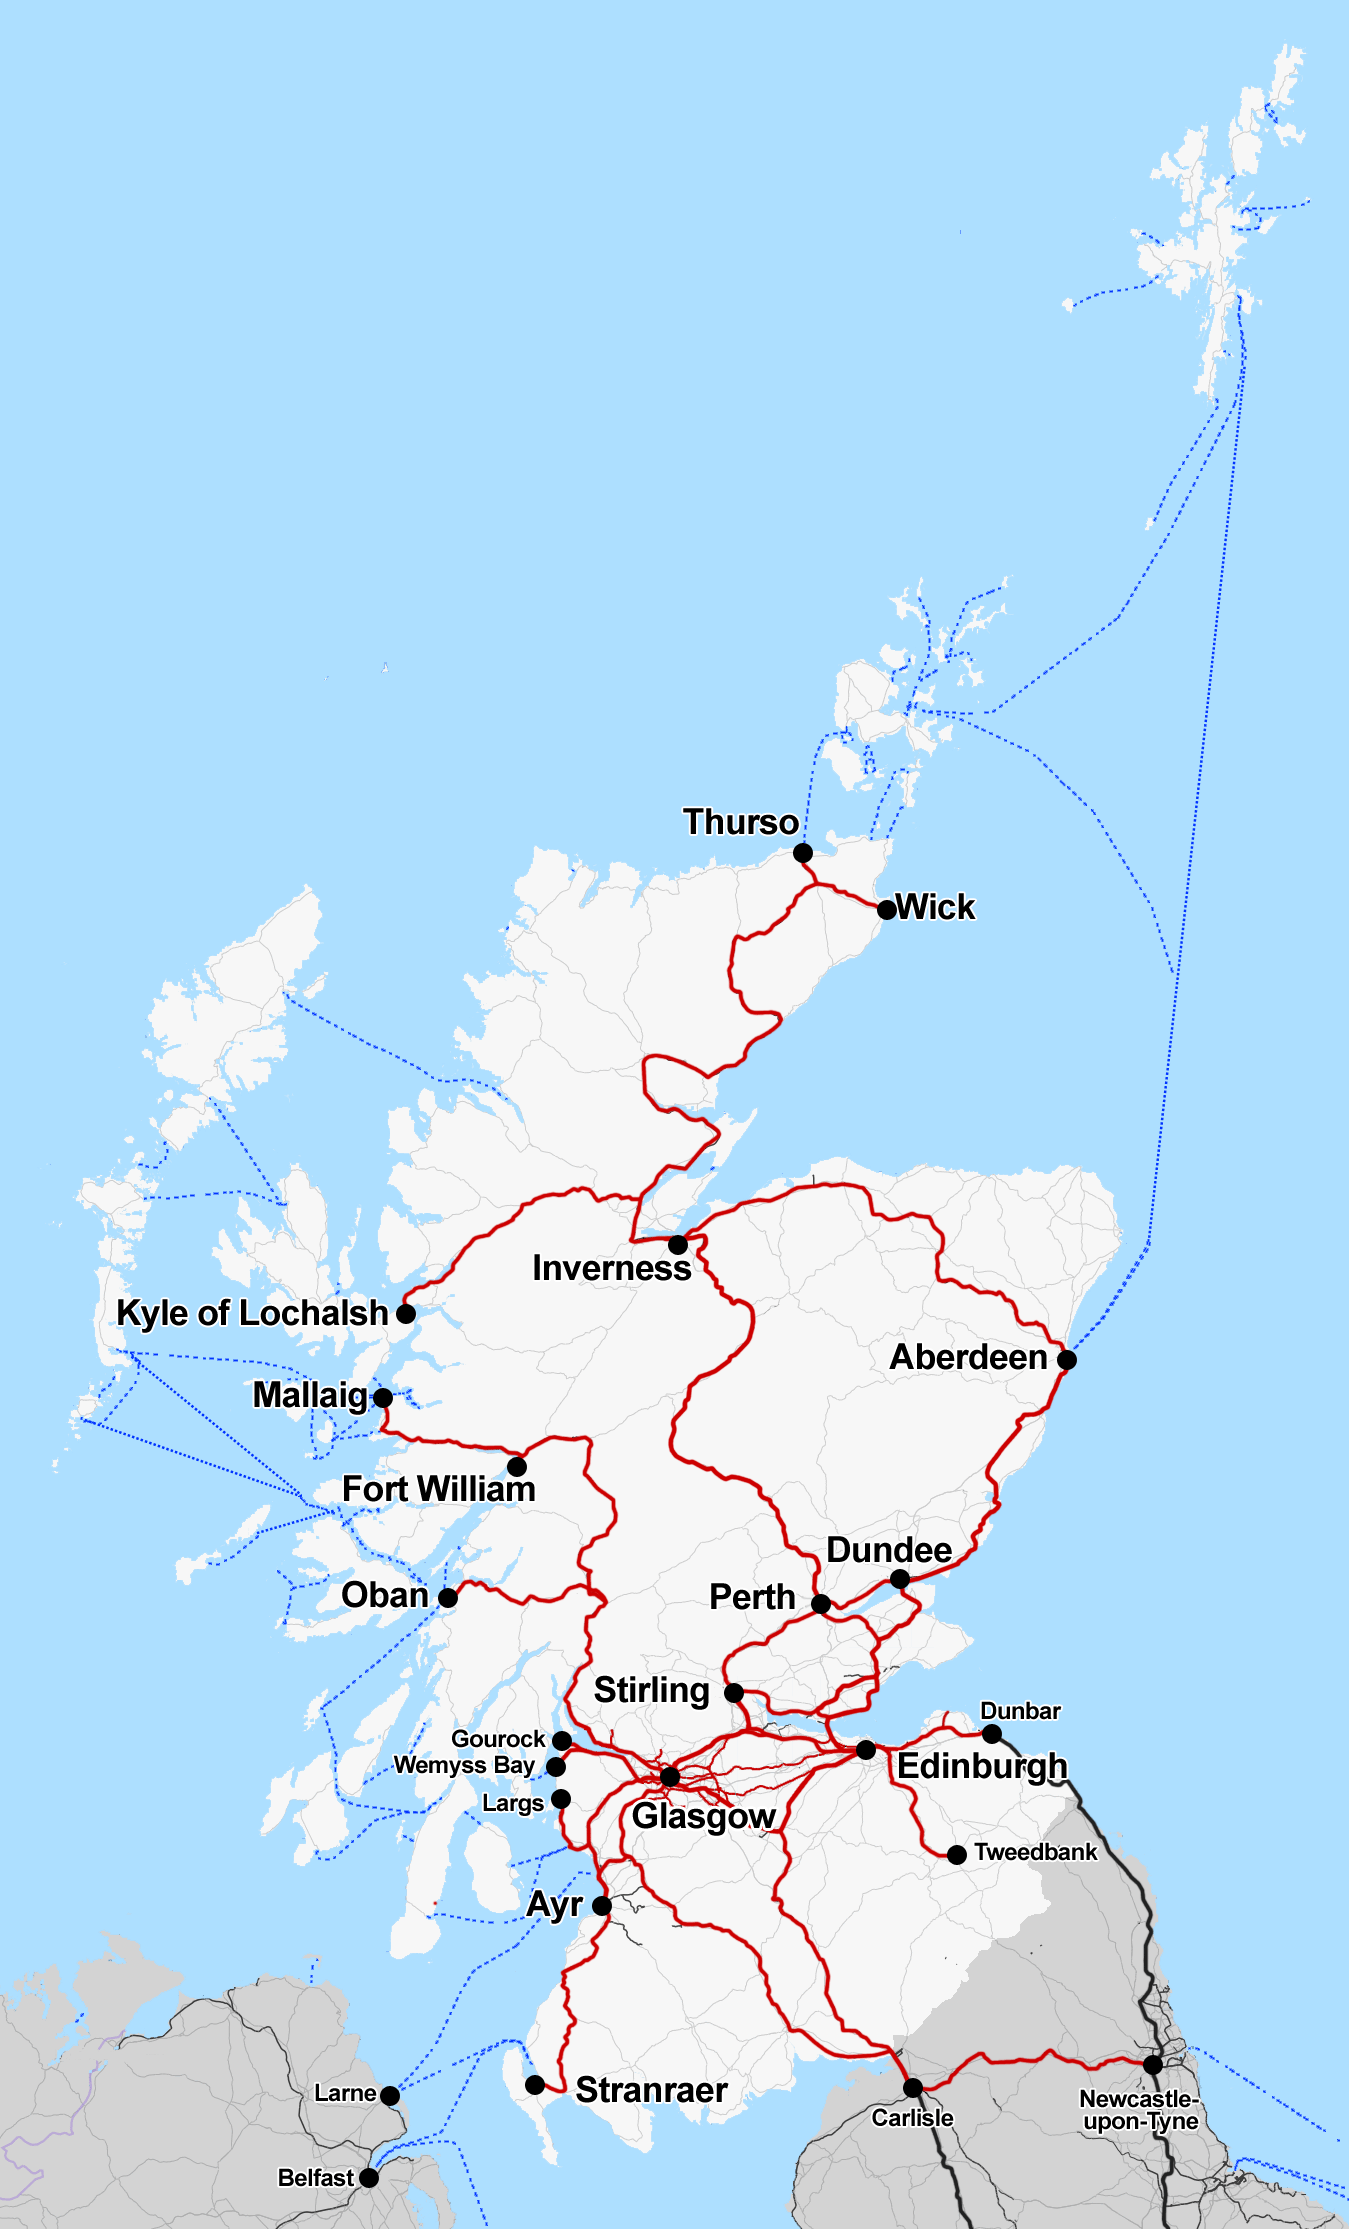 FileRail map scotland 2014png Wikimedia Commons